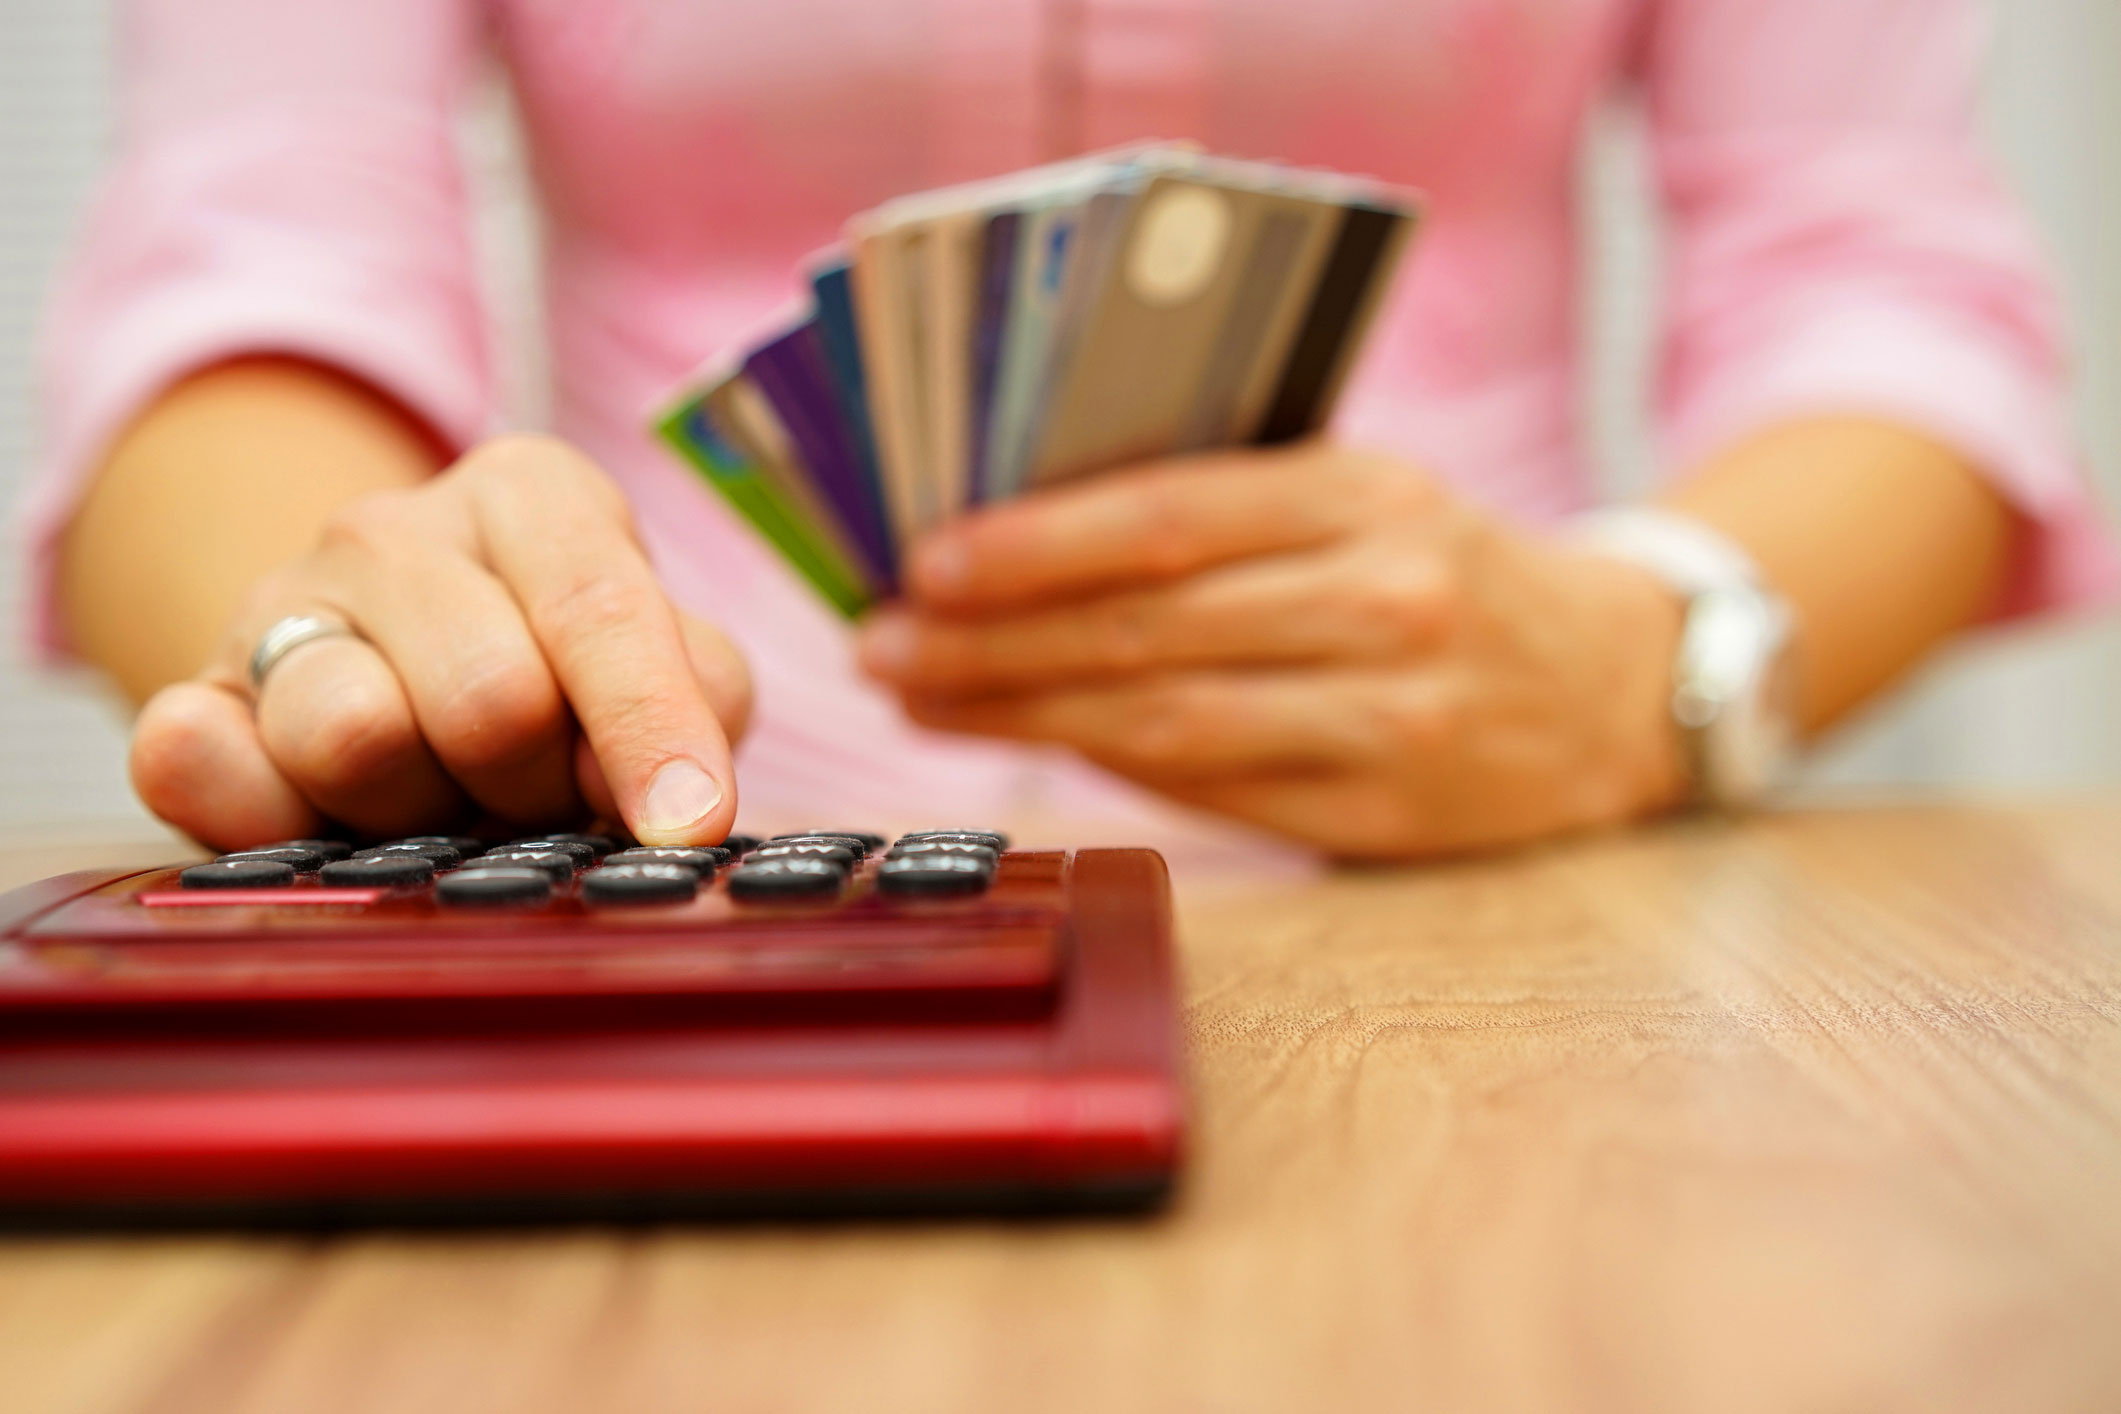 Woman-calculates-cost-with-credit-cards